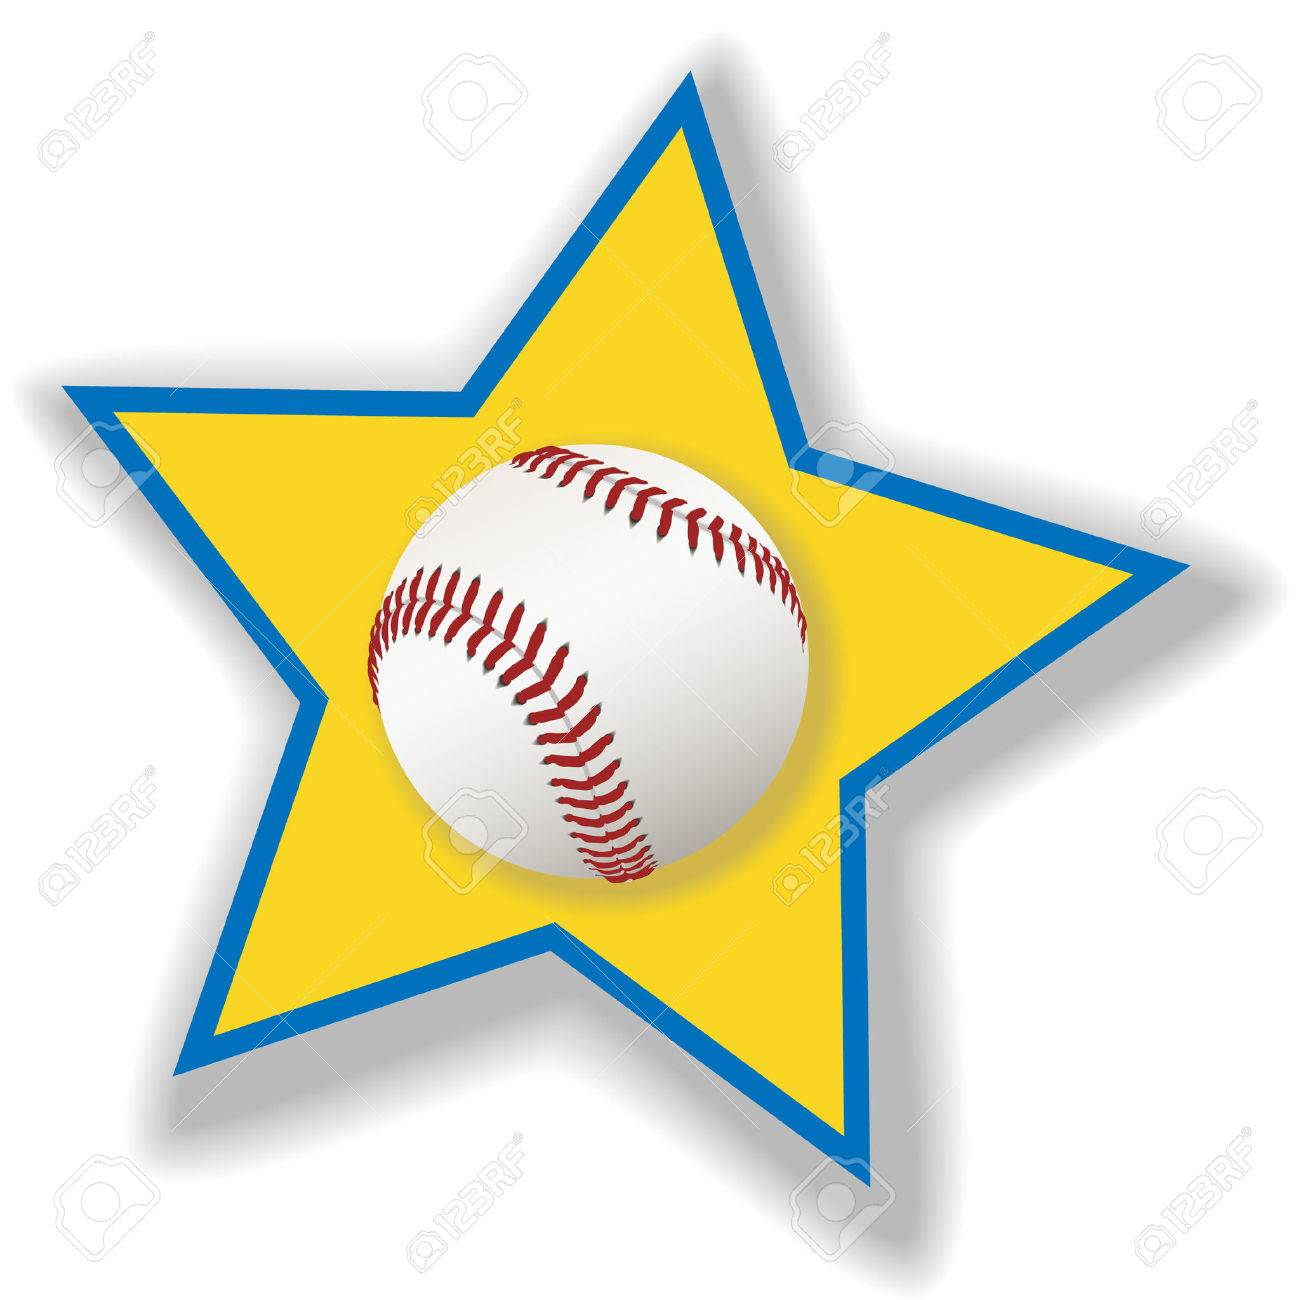 A clean, white baseball or softball on a star background for all star baseball. Sports illustration. Stock Vector - 2549089